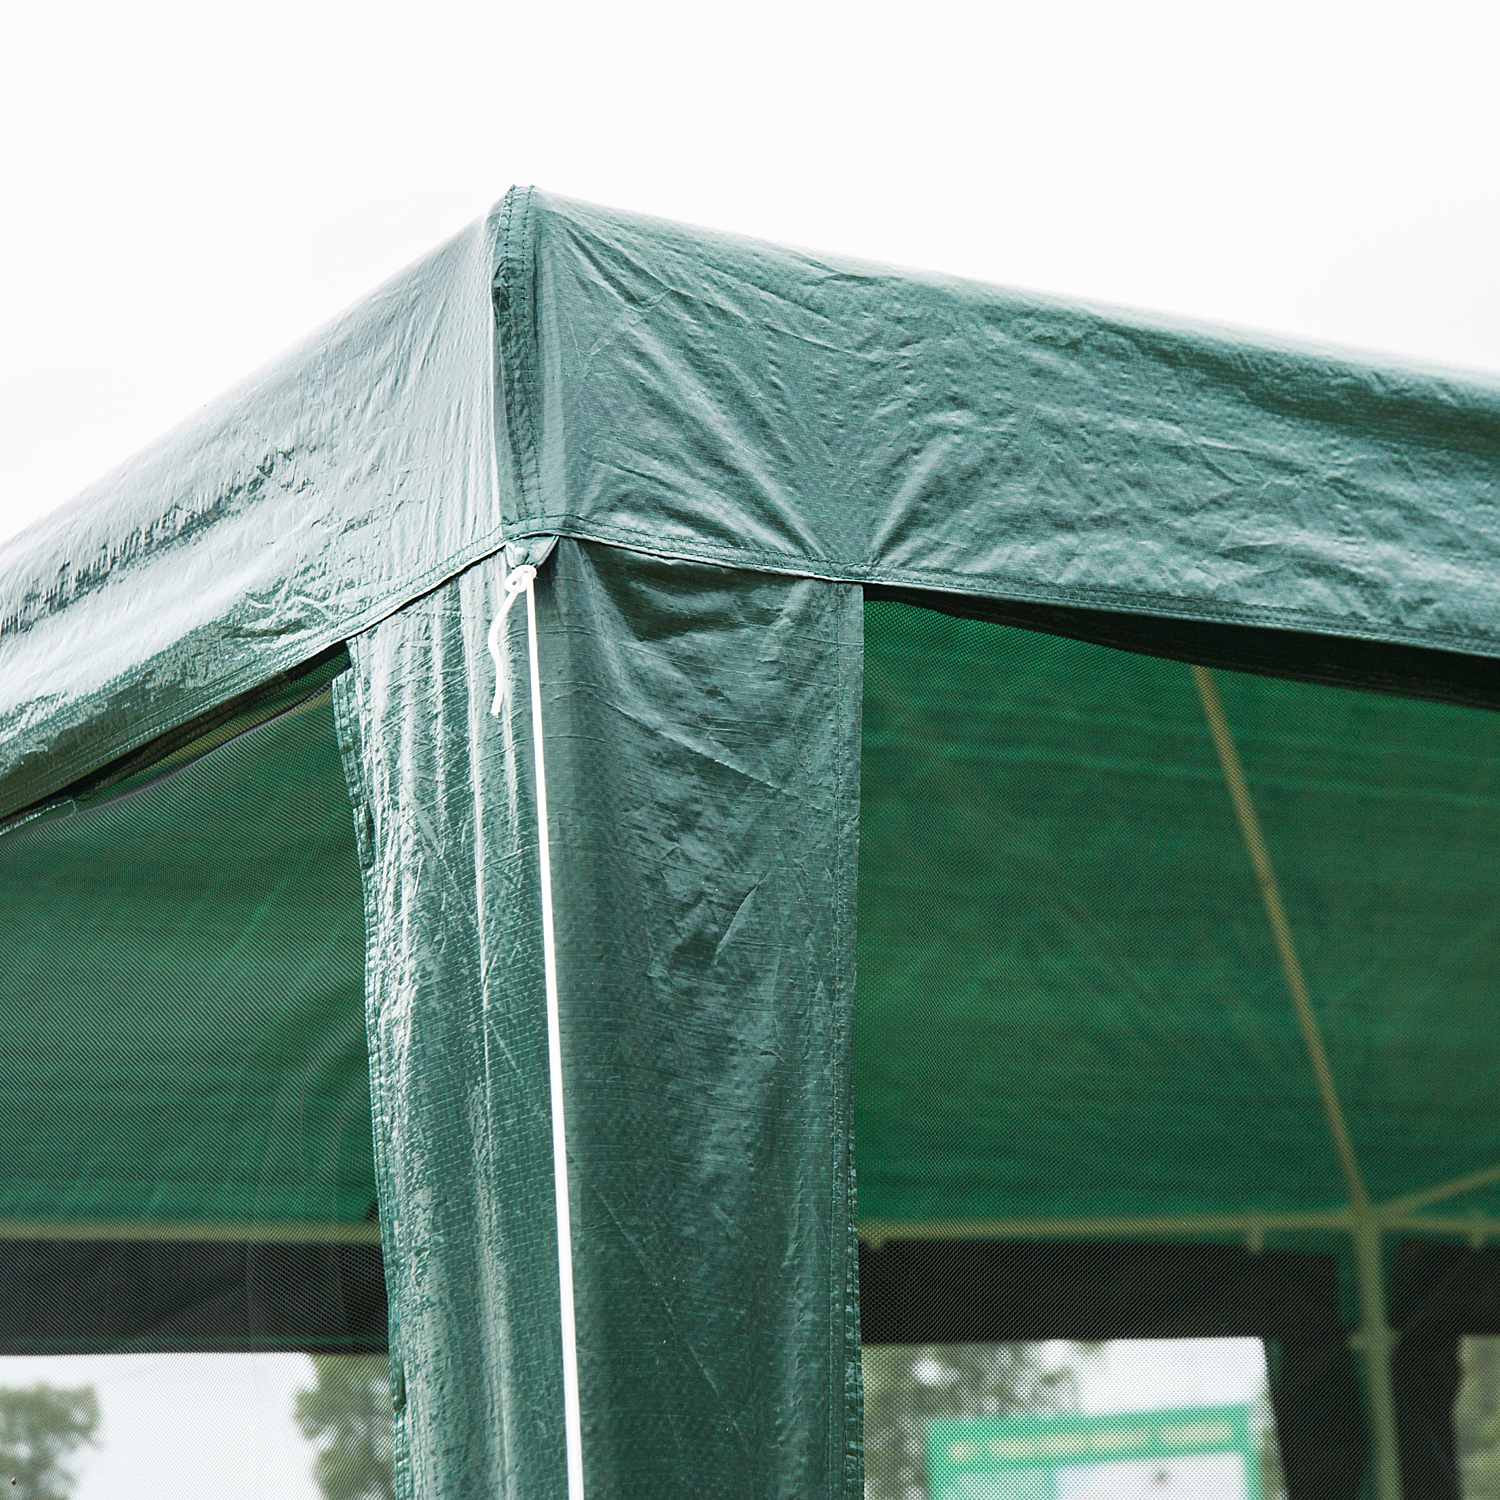 10-039-x-20-039-Gazebo-Canopy-Cover-Tent-Patio-Party-w-Removable-Mesh-Side-Walls thumbnail 8